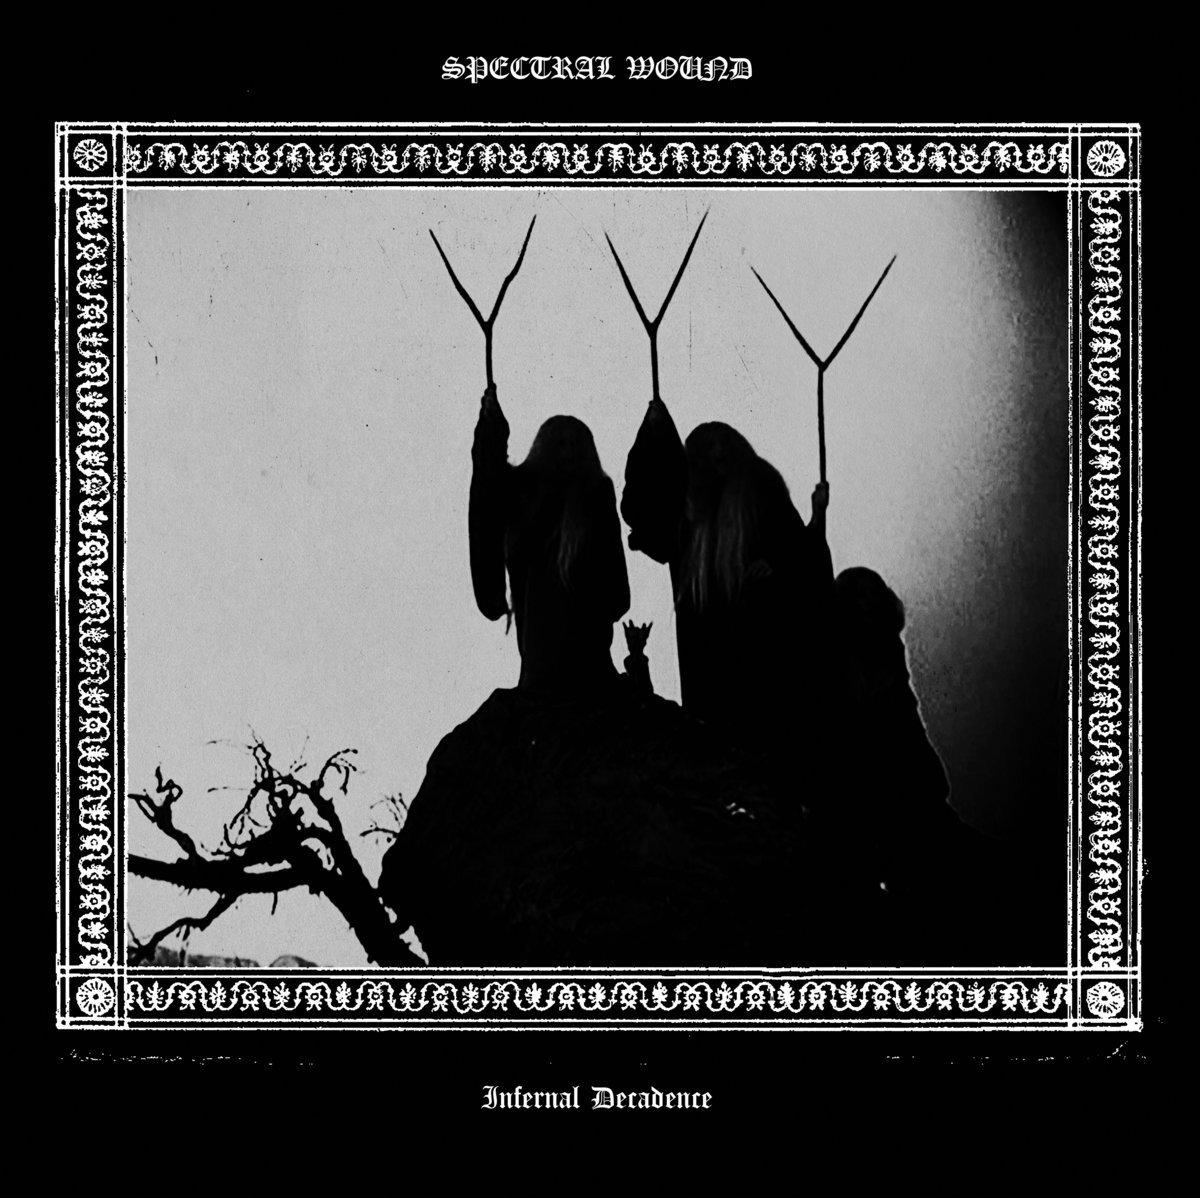 spectral wound